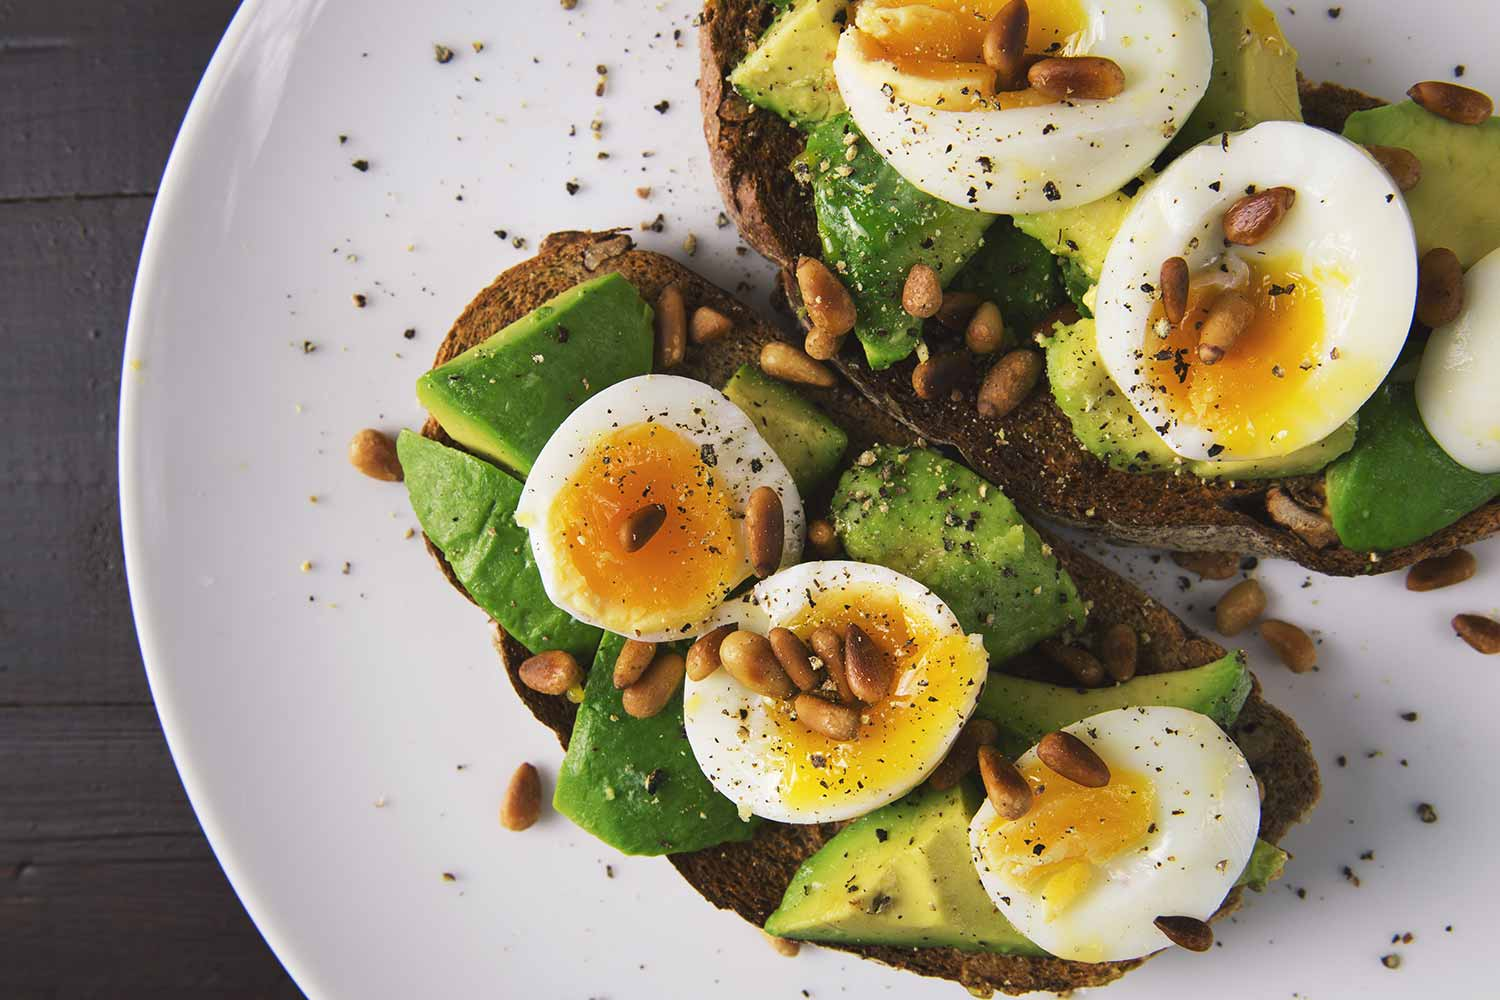 Healthy meal of eggs and avocado on toast.